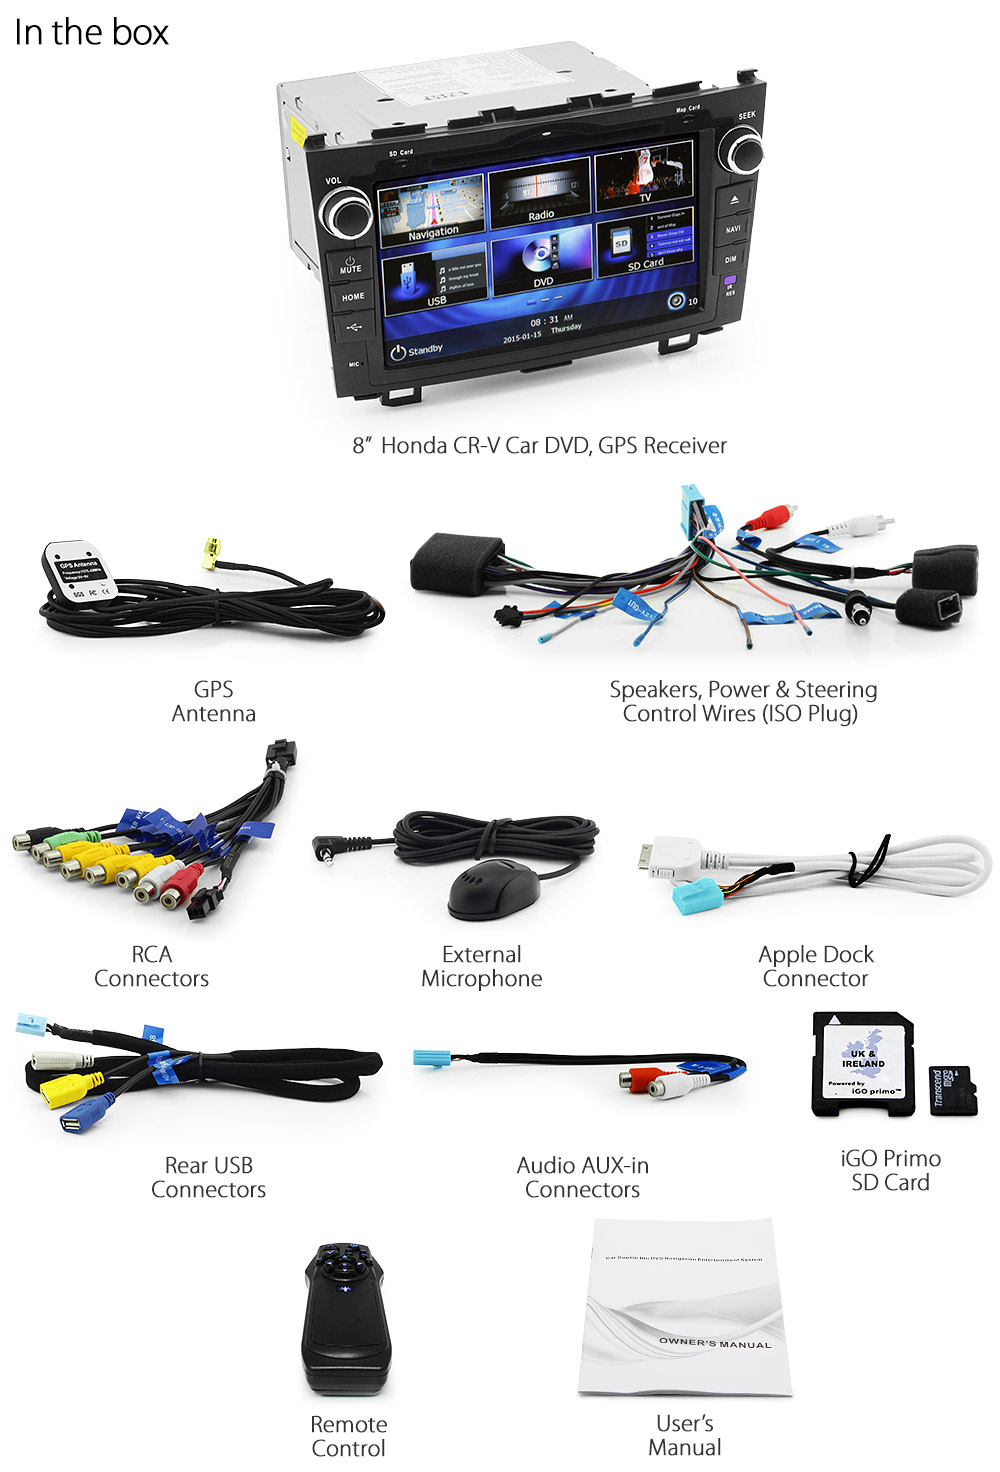 8 Honda CRV Car DVD GPS Player Radio Head Unit Stereo Sat Nav MK – Jvc R330 Wiring-diagram